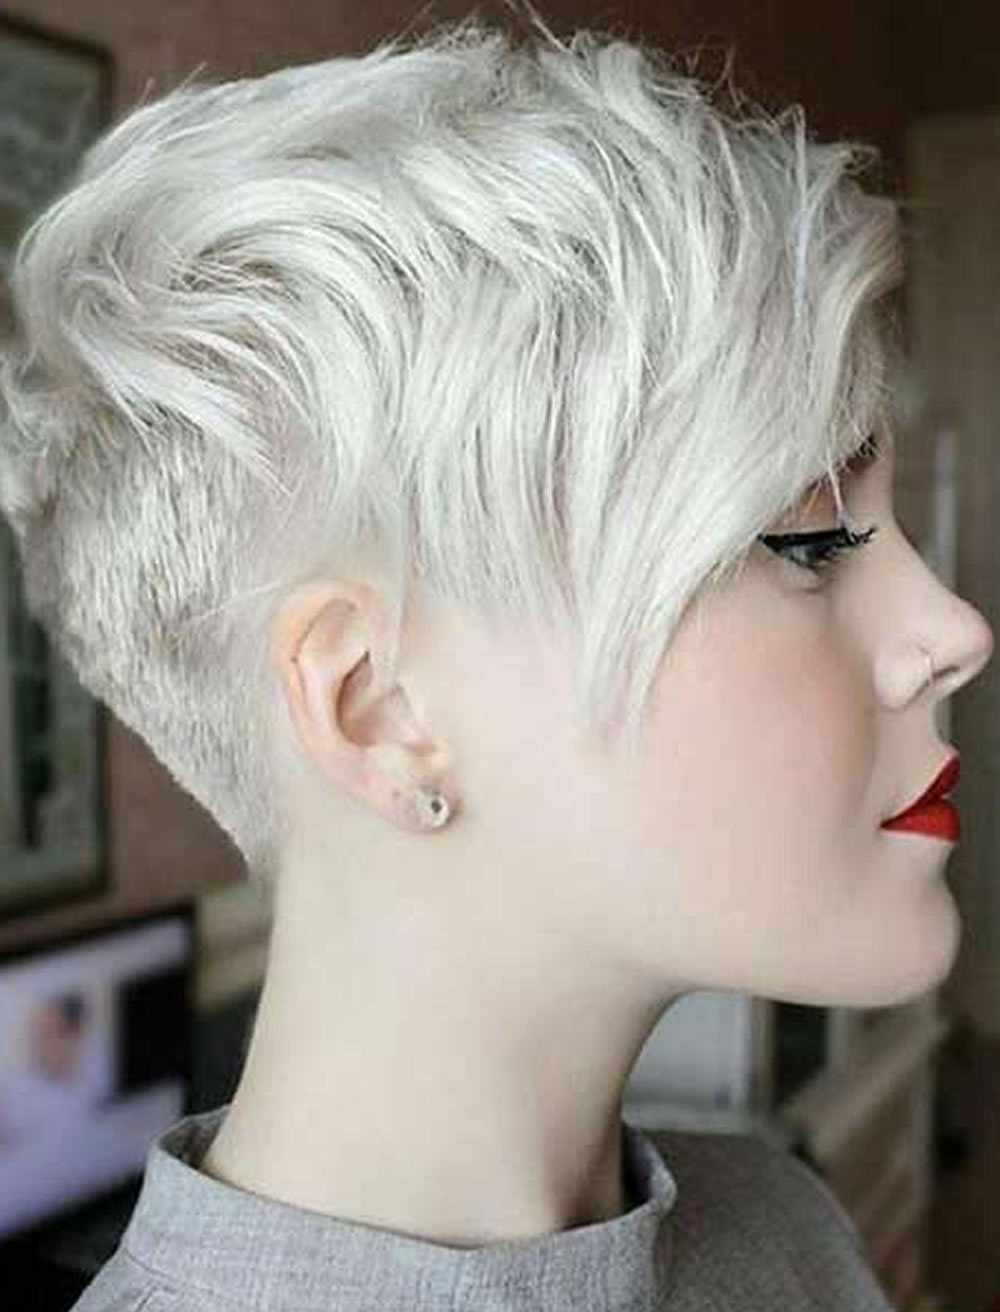 Gray Short Hair Pixie Hairstyles For Girls 2017 2018 – Hairstyles Throughout Gray Short Hairstyles (View 9 of 25)